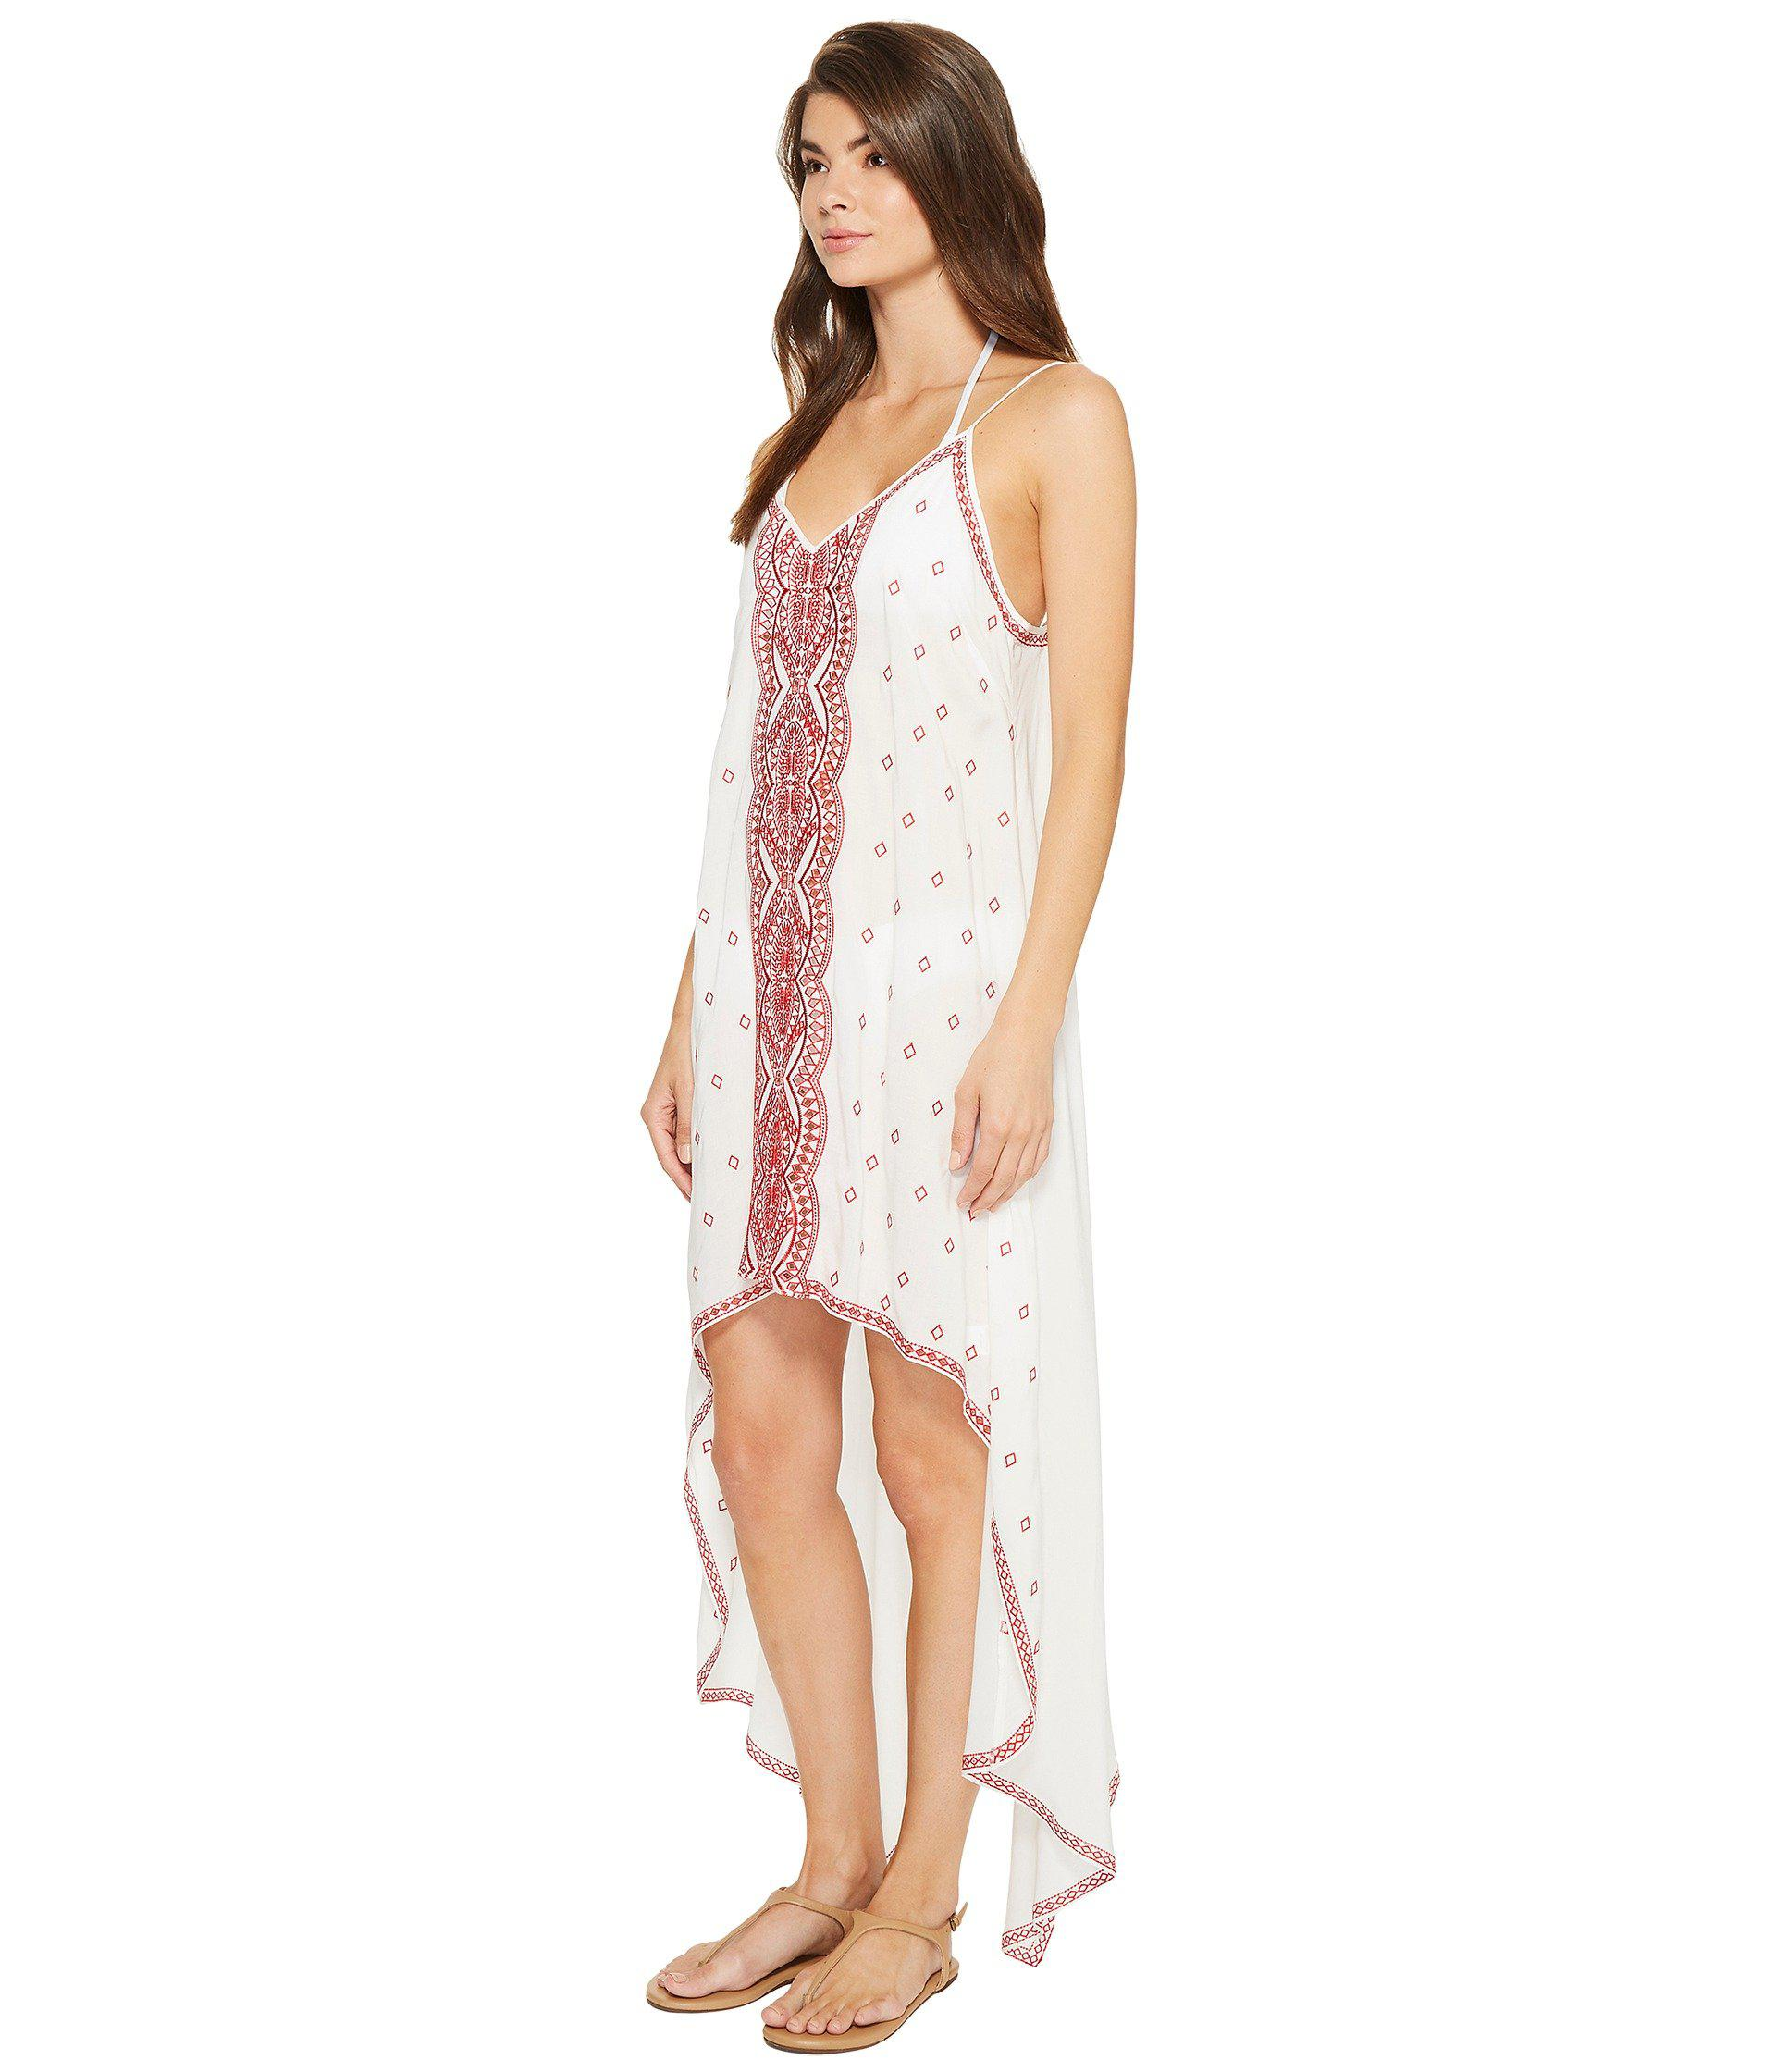 6e0dcc6aef Lyst - Nicole Miller La Plage By Embroidered Beach Scarf Dress/cover ...